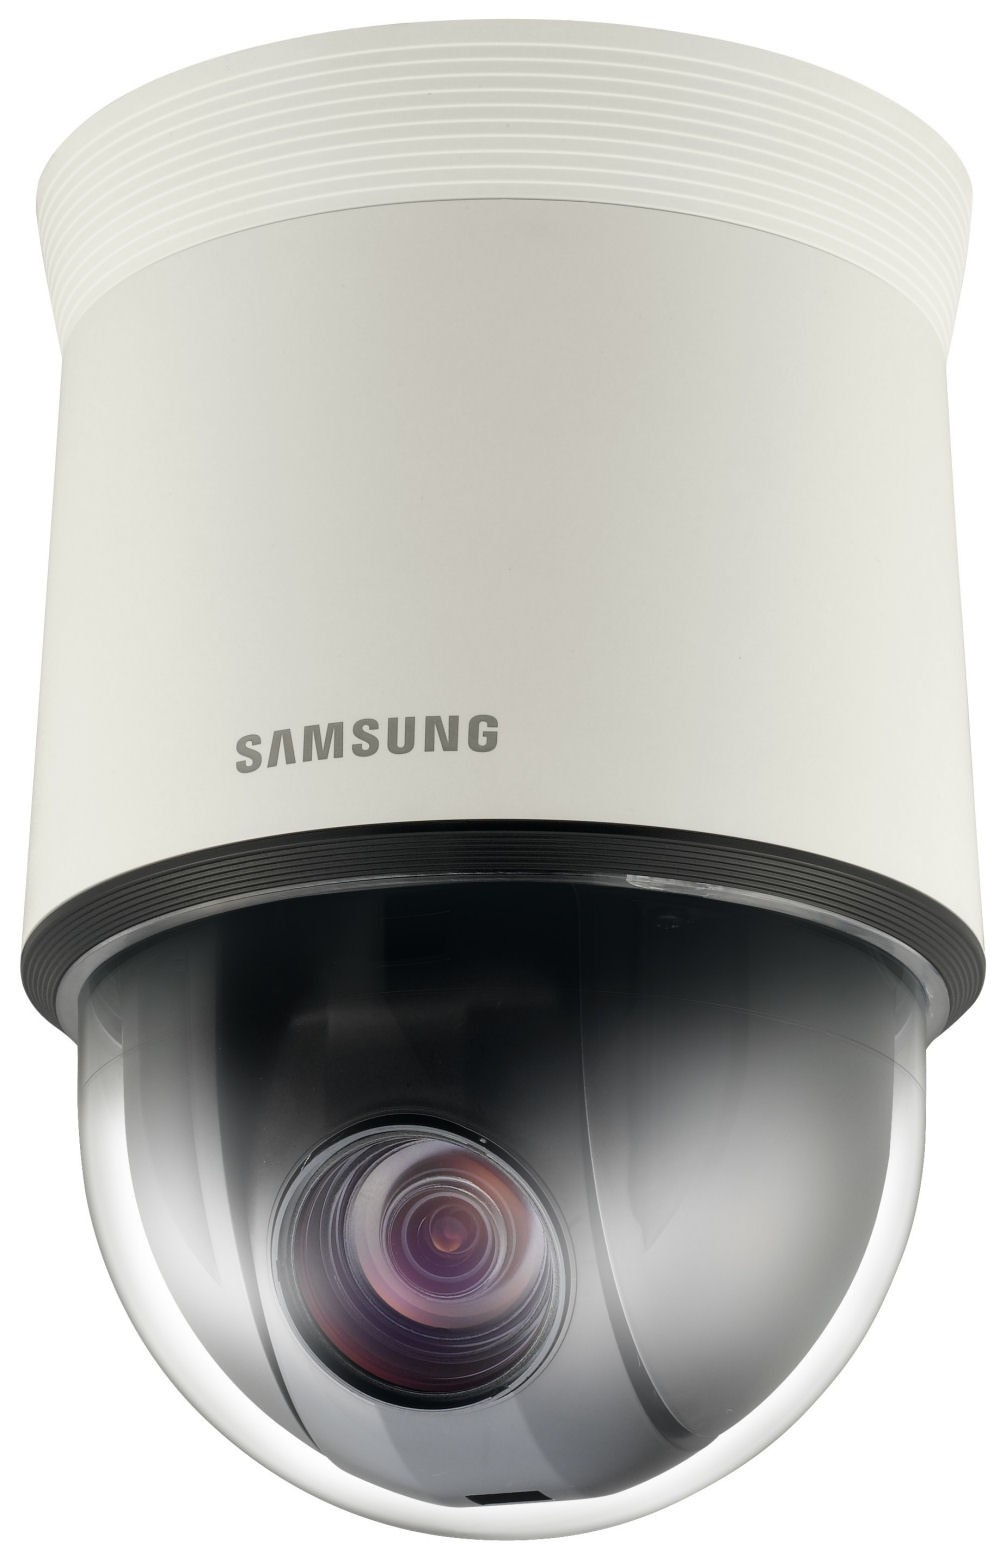 Samsung SNP6201P 2MP Full HD 20x Compact Network PTZ Camera